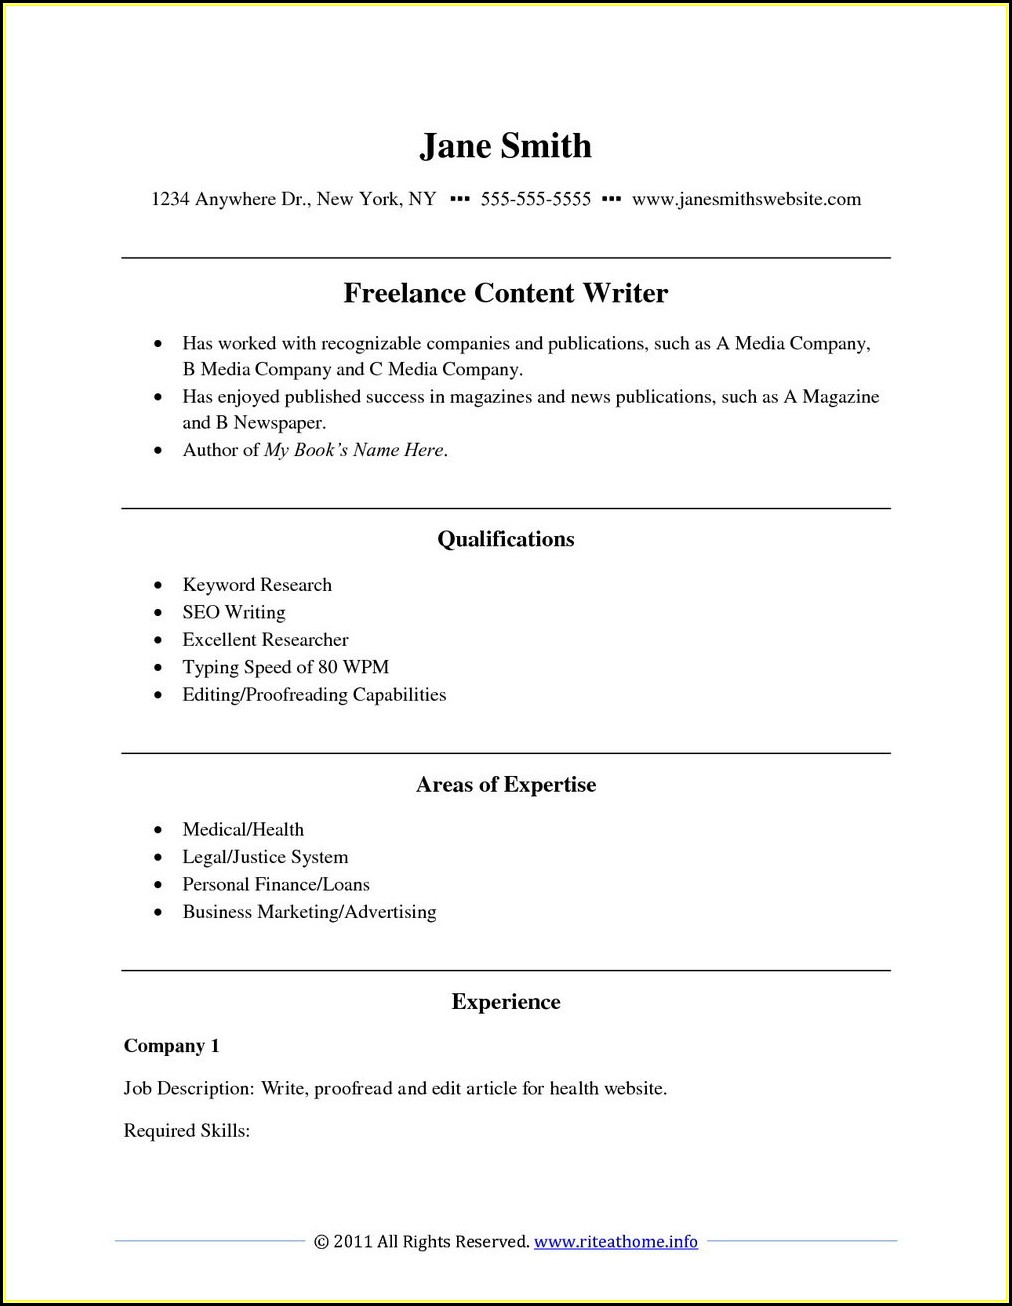 federal resume writing services best usajobs upstate rochester ny tmux lvn sample Resume Federal Resume Writing Services